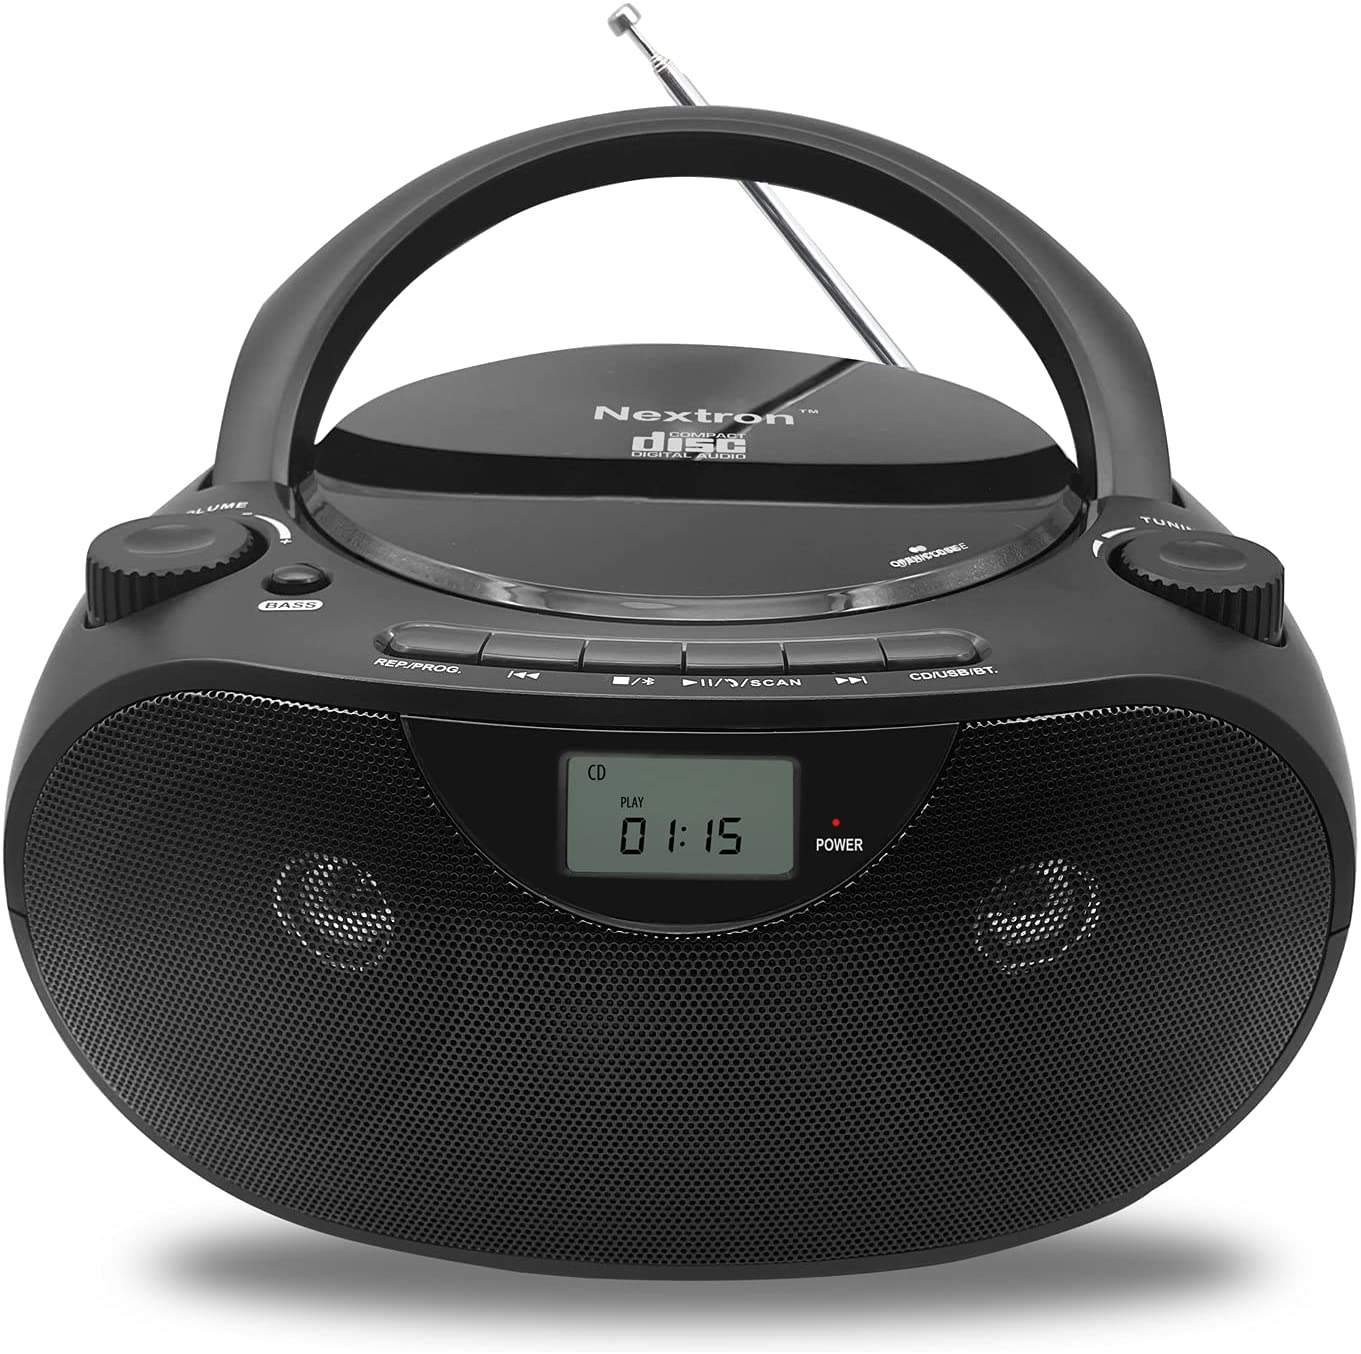 Nextron Portable Bluetooth CD Player Boombox with AM/FM Radio Stereo Sound System, Playback CD/MP3/WMA, USB & AUX Ports, Headphone Jack, LCD Display, AC/DC Operated